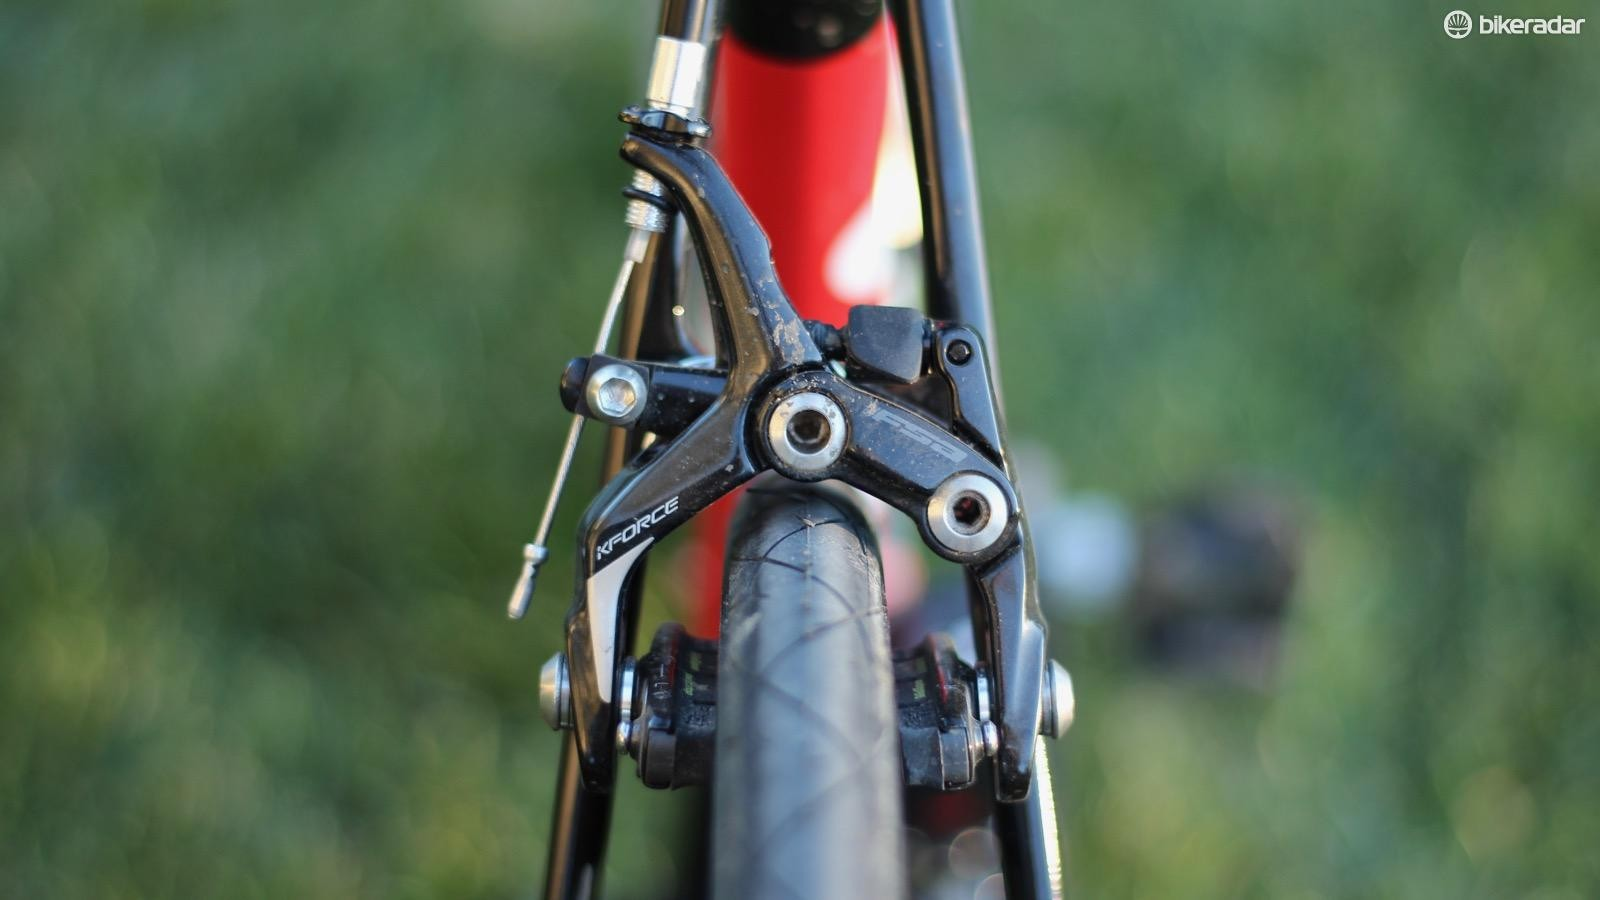 FSA claims that the calipers can handle up to a 28mm tire (25mm shown here), while the arms are still relatively narrow within the frame's profile